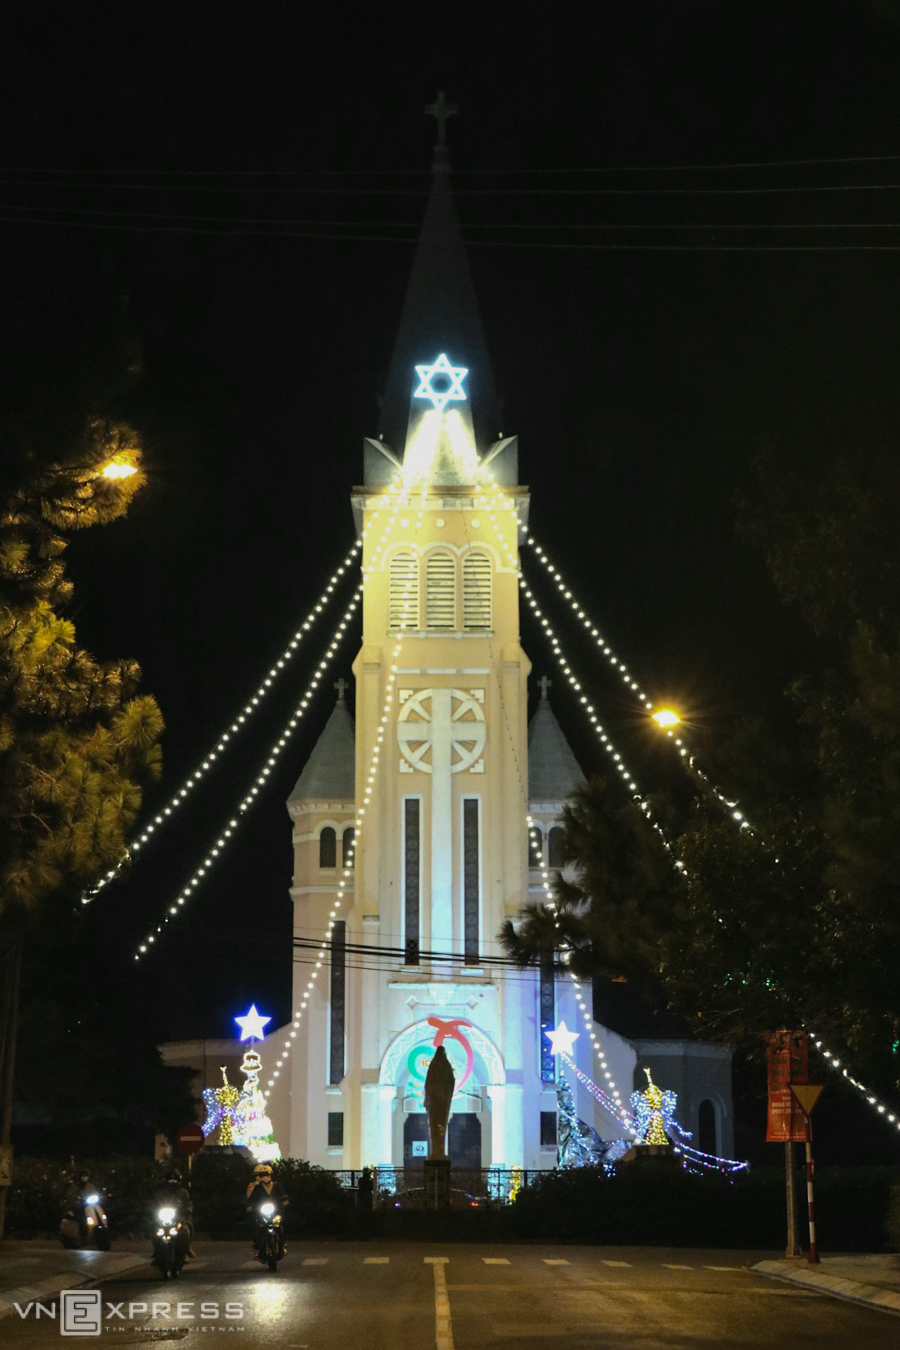 Churches across Vietnam get decked out for Xmas